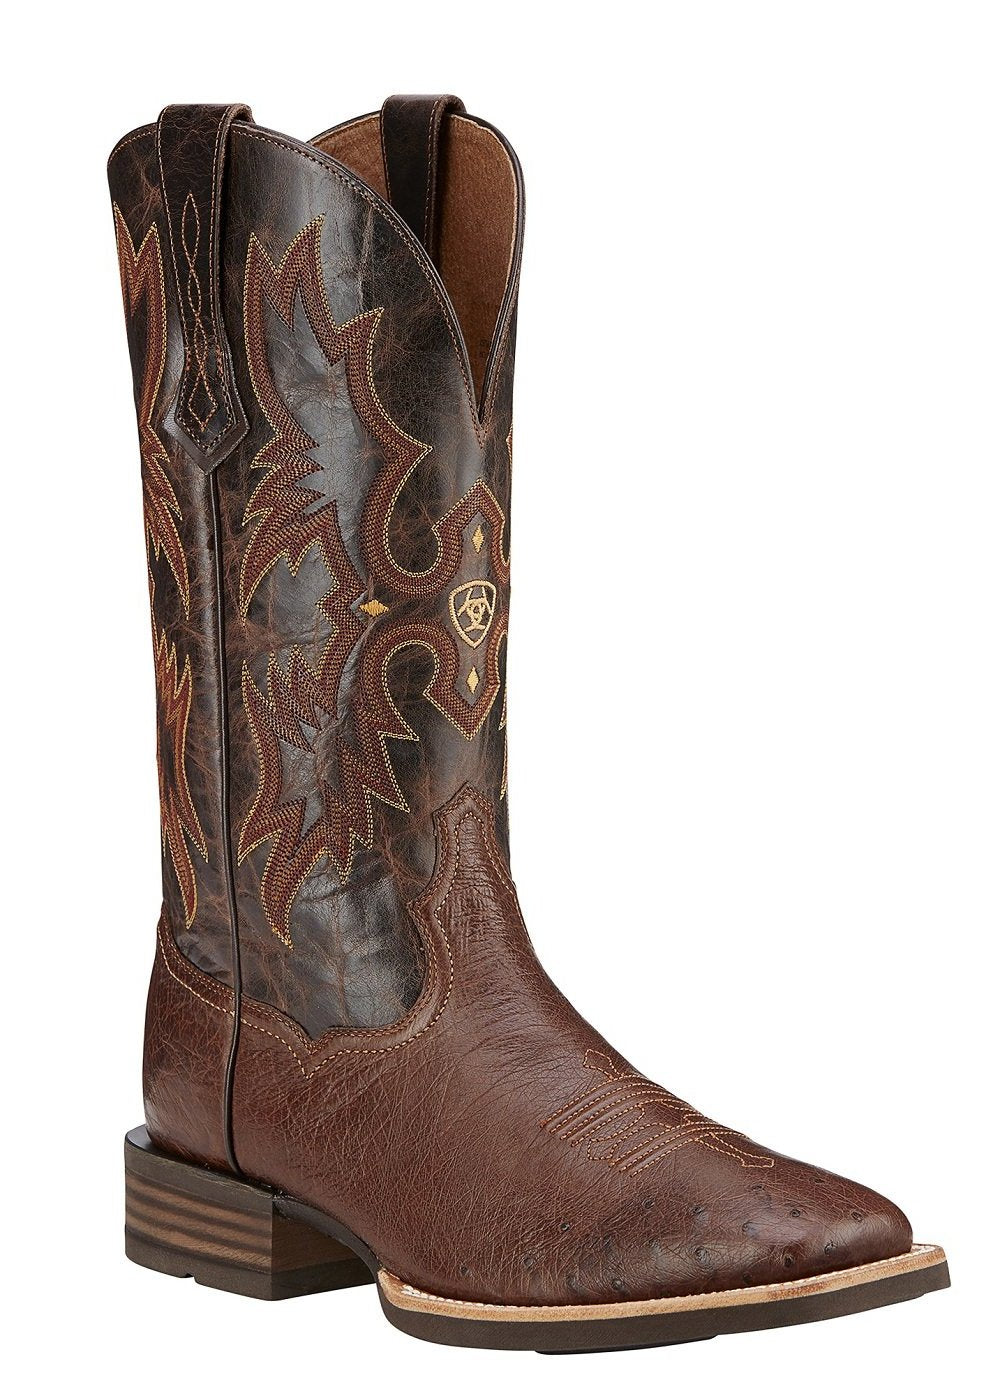 ARIAT MEN'S TOMBSTONE SMOOTH QUILL OSTRICH BOOT- STYLE #10016276